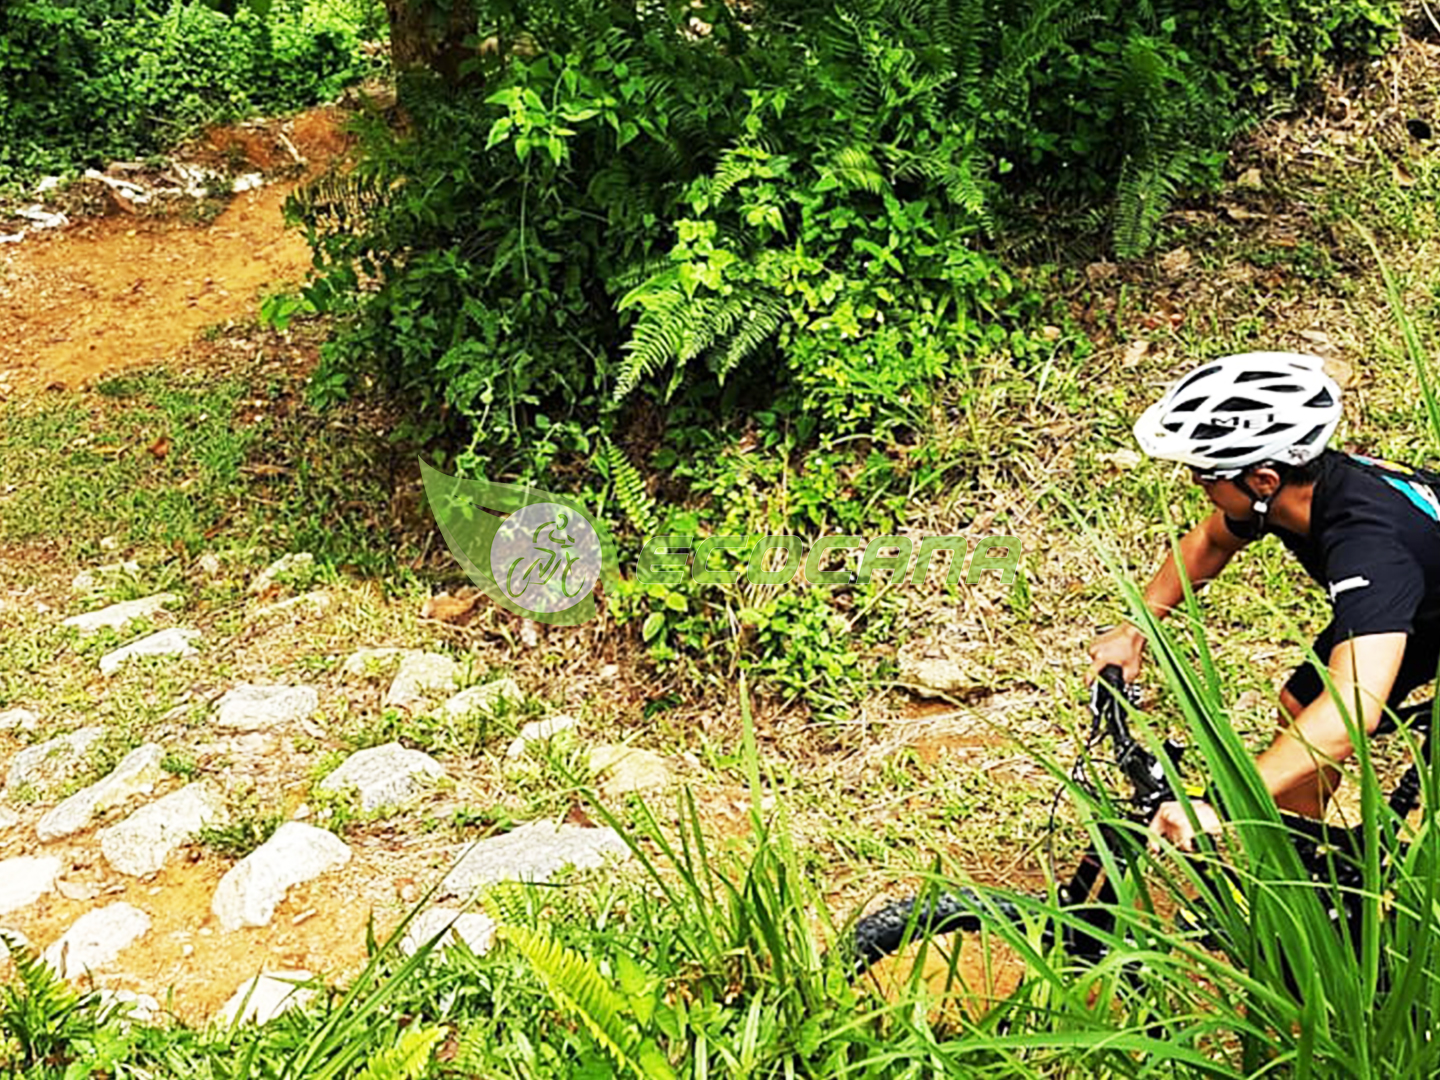 Putrajaya Challenge Park Dirt Mountain Biking